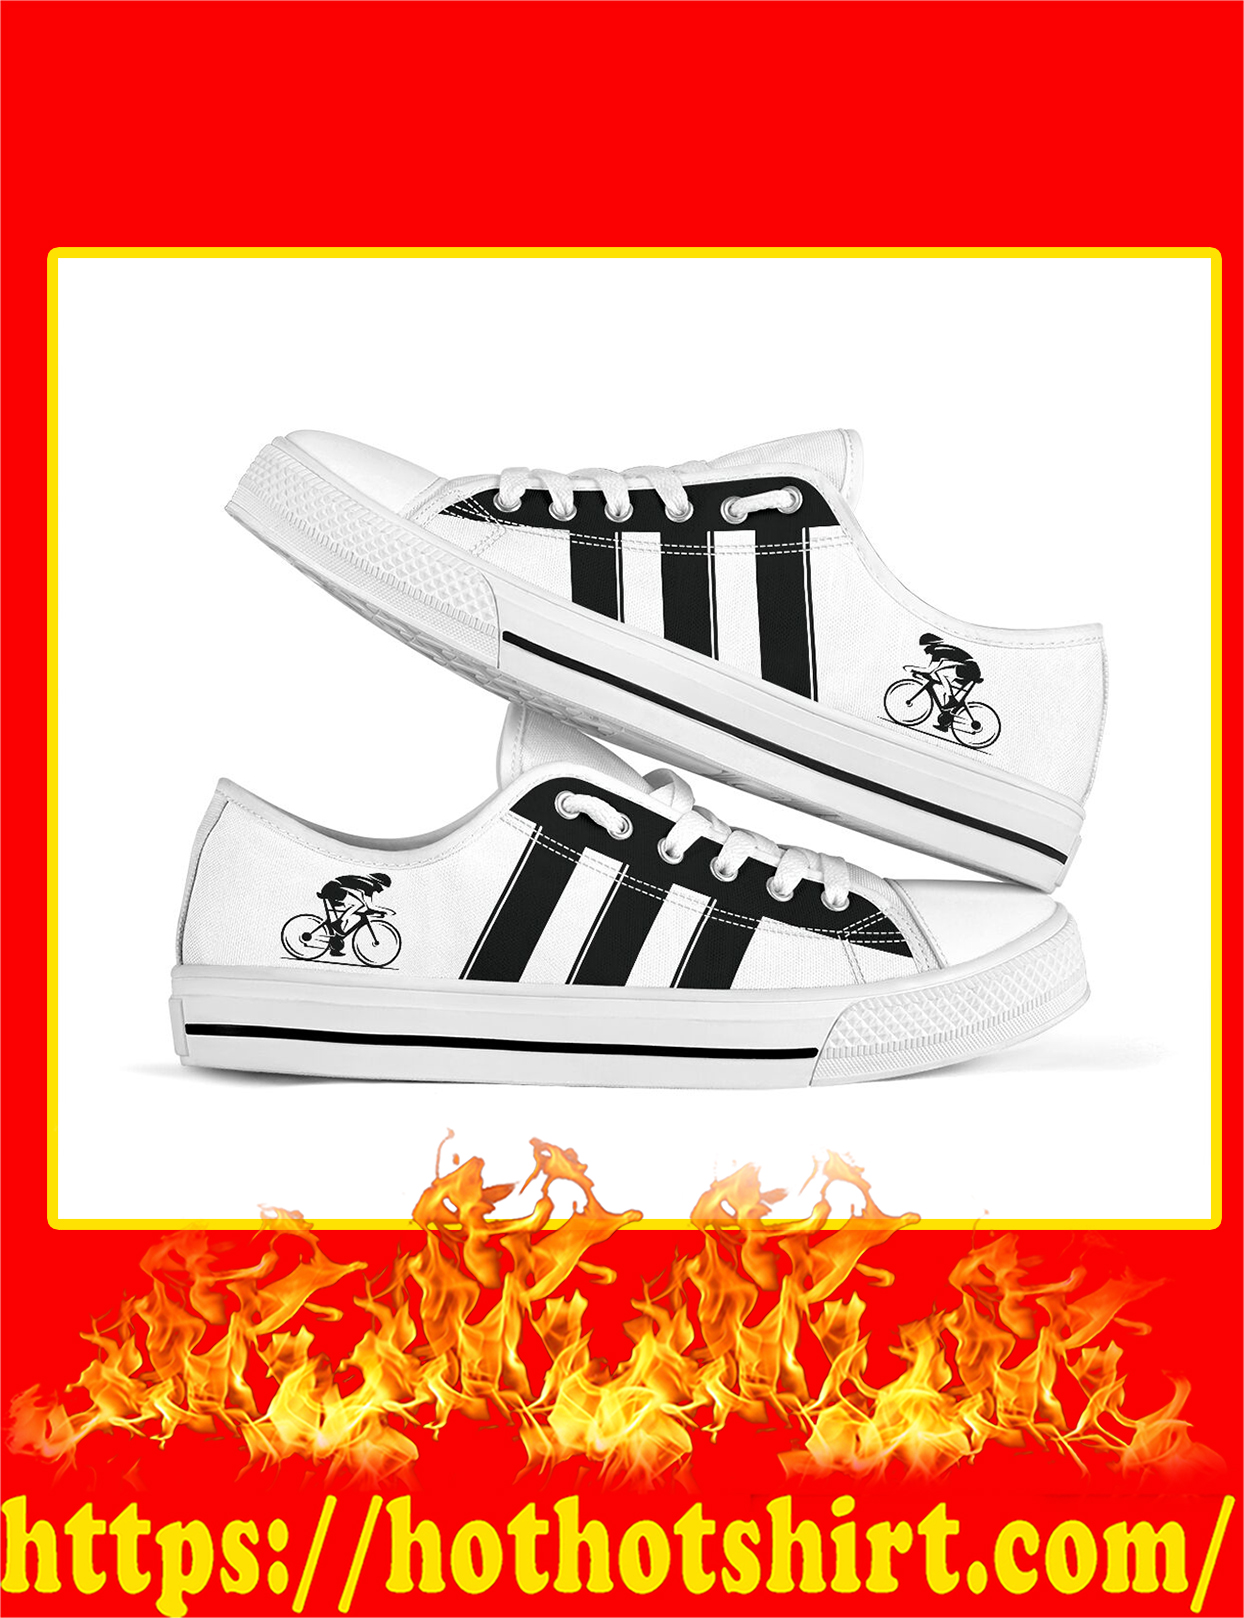 Cycling Low Top Shoes - Pic 2